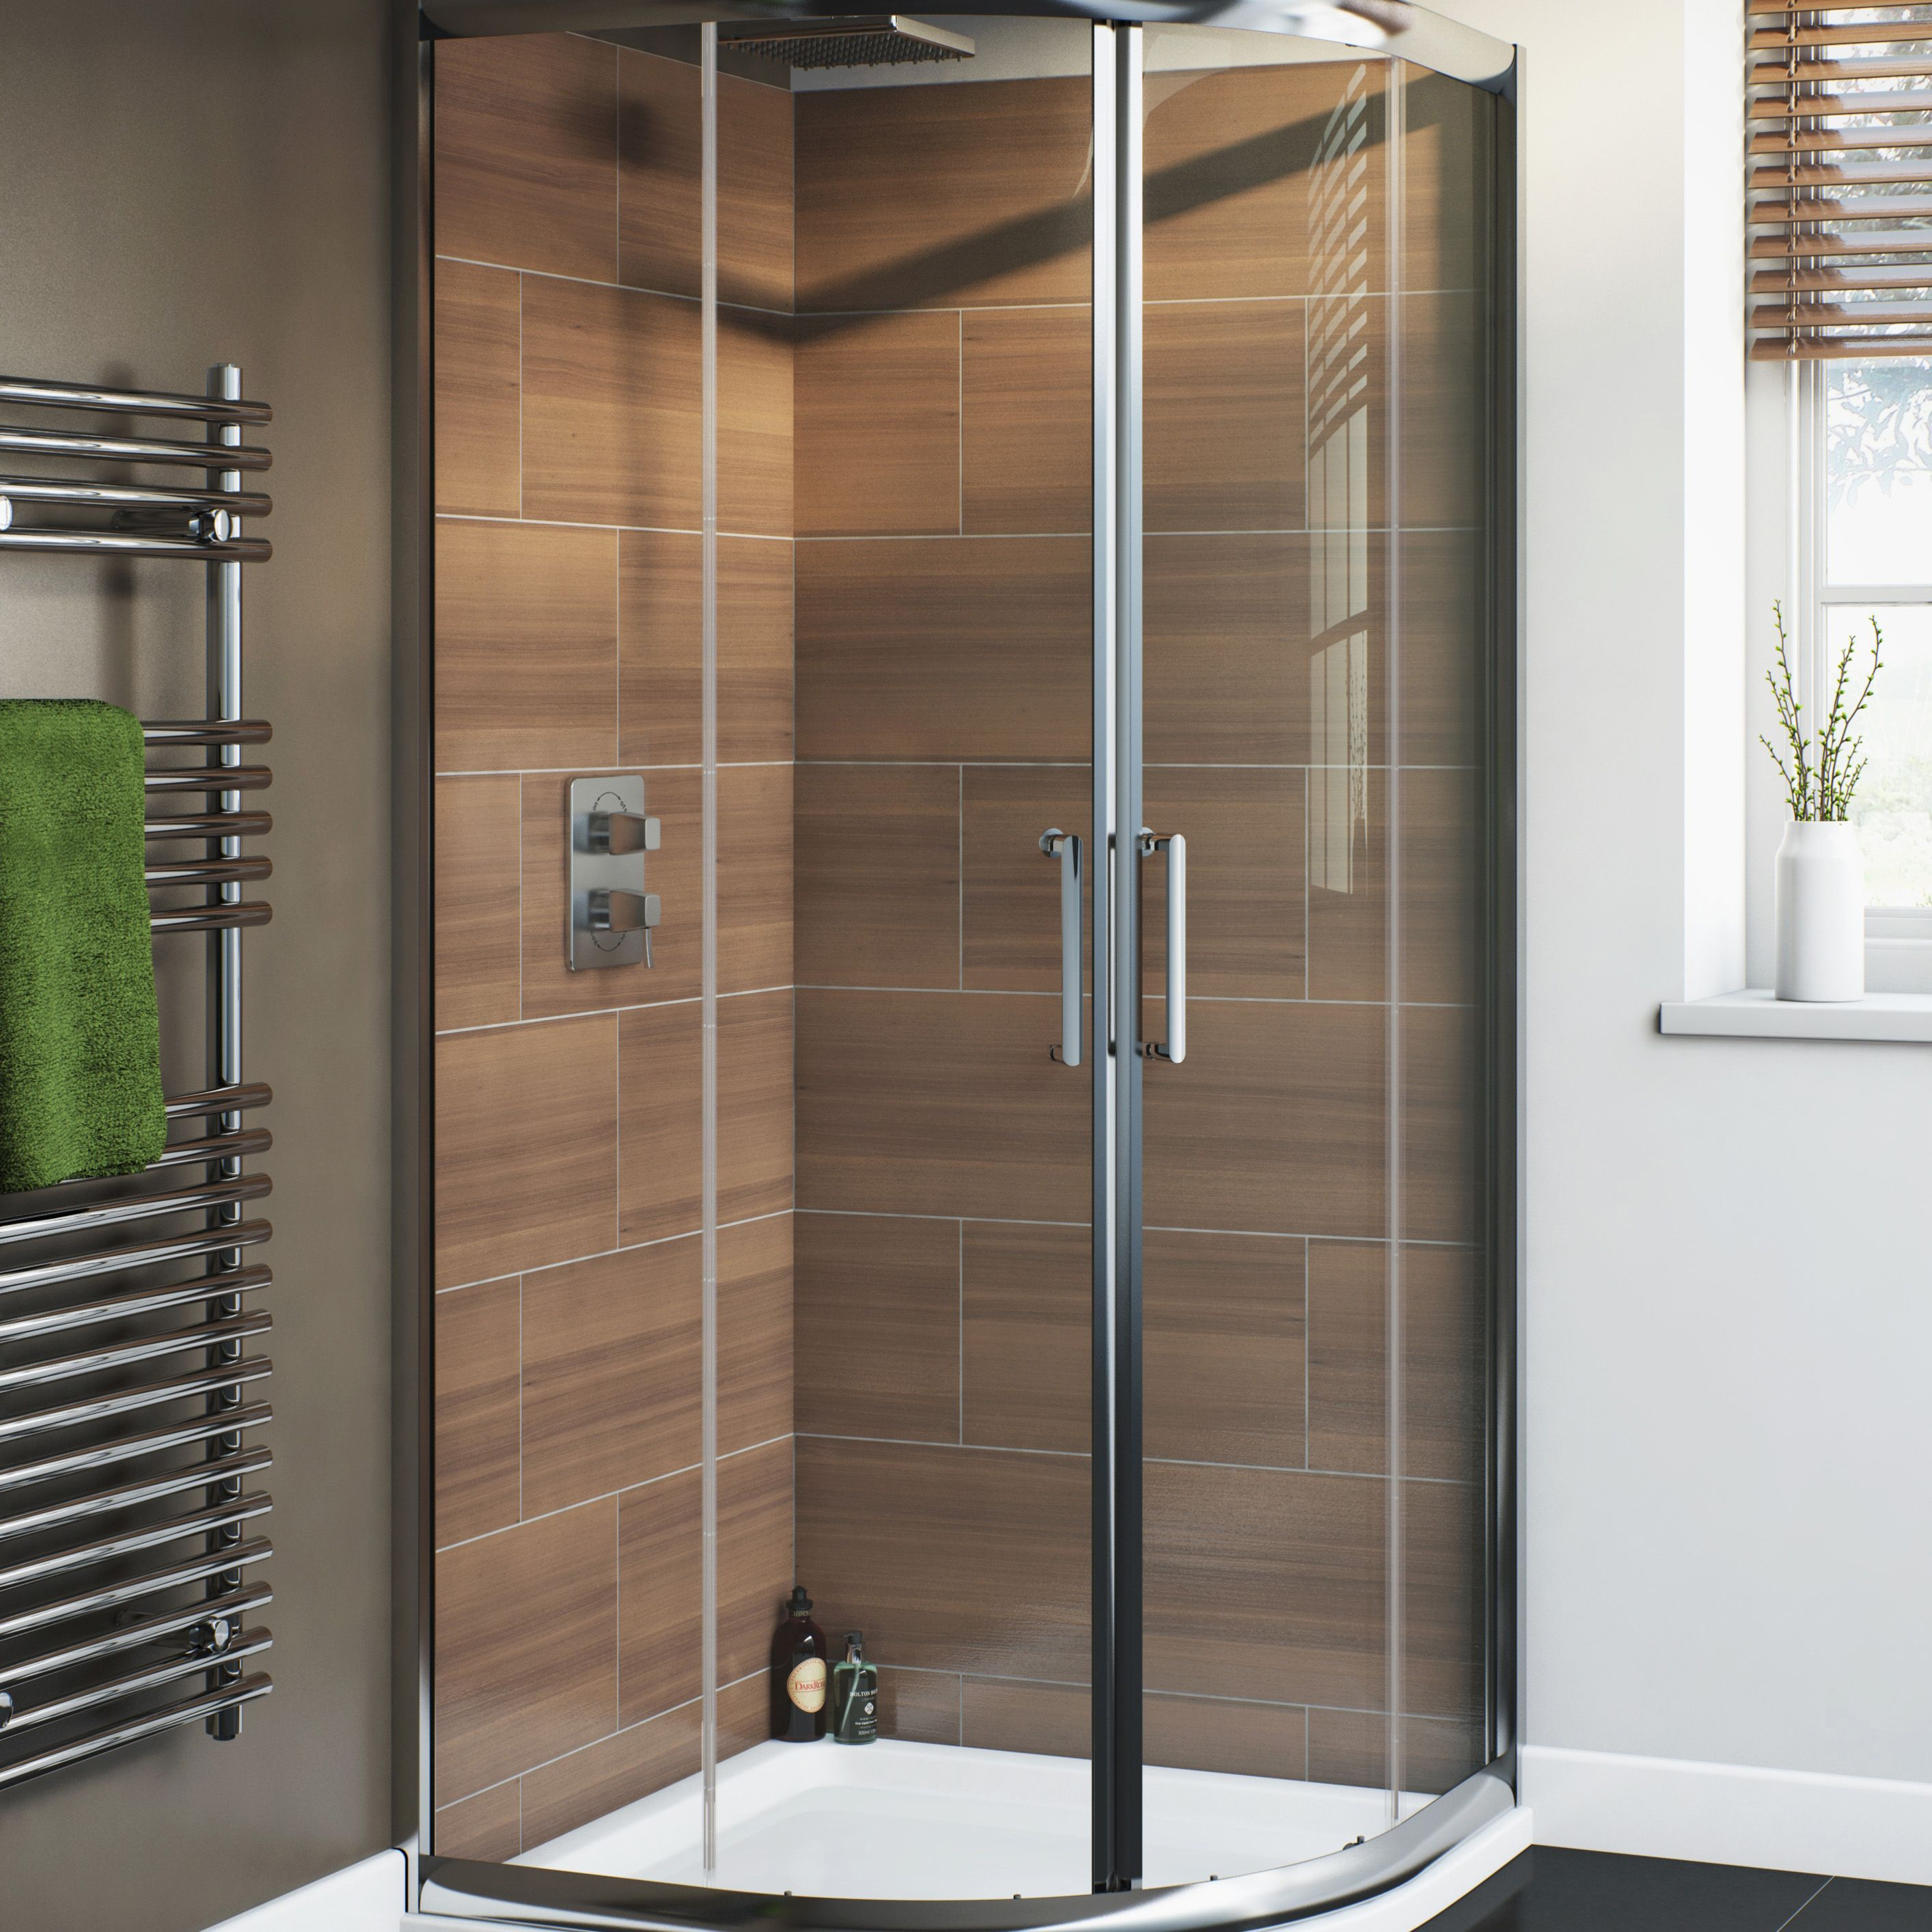 cooke lewis nadina quadrant shower enclosure tray. Black Bedroom Furniture Sets. Home Design Ideas